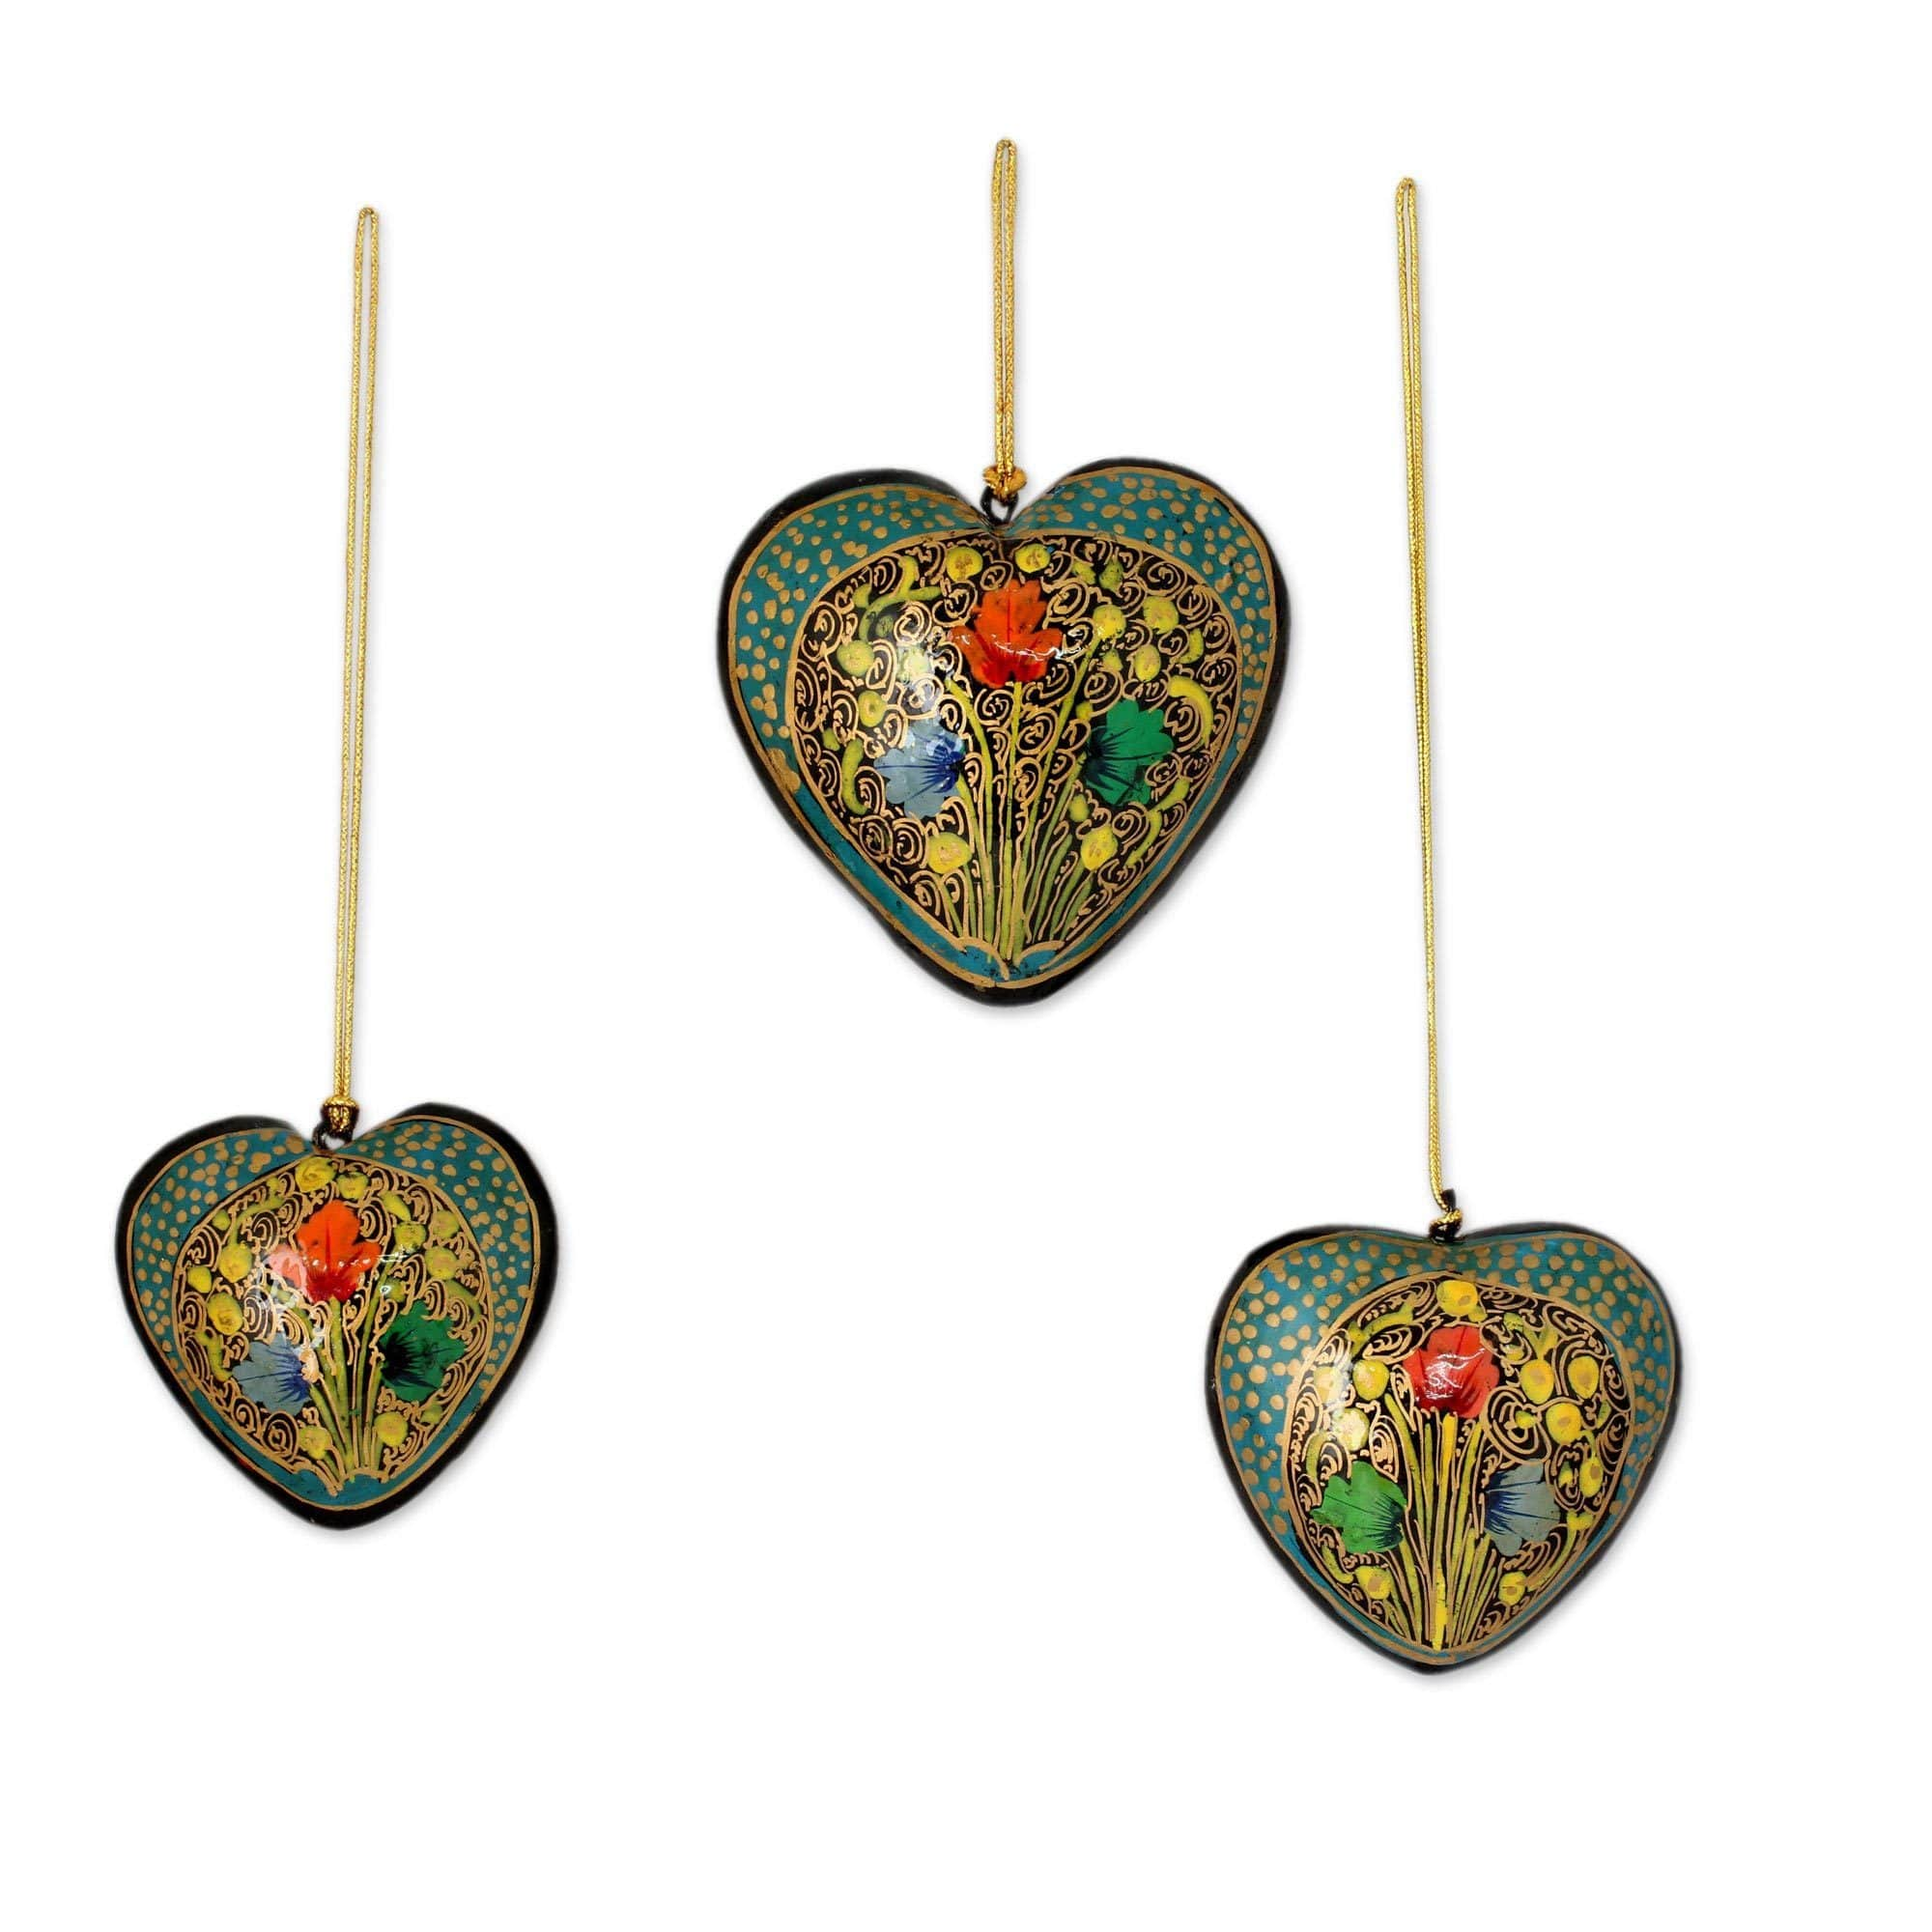 Handmade Set Of 3 Papier Mache Ornaments, Floral Heart